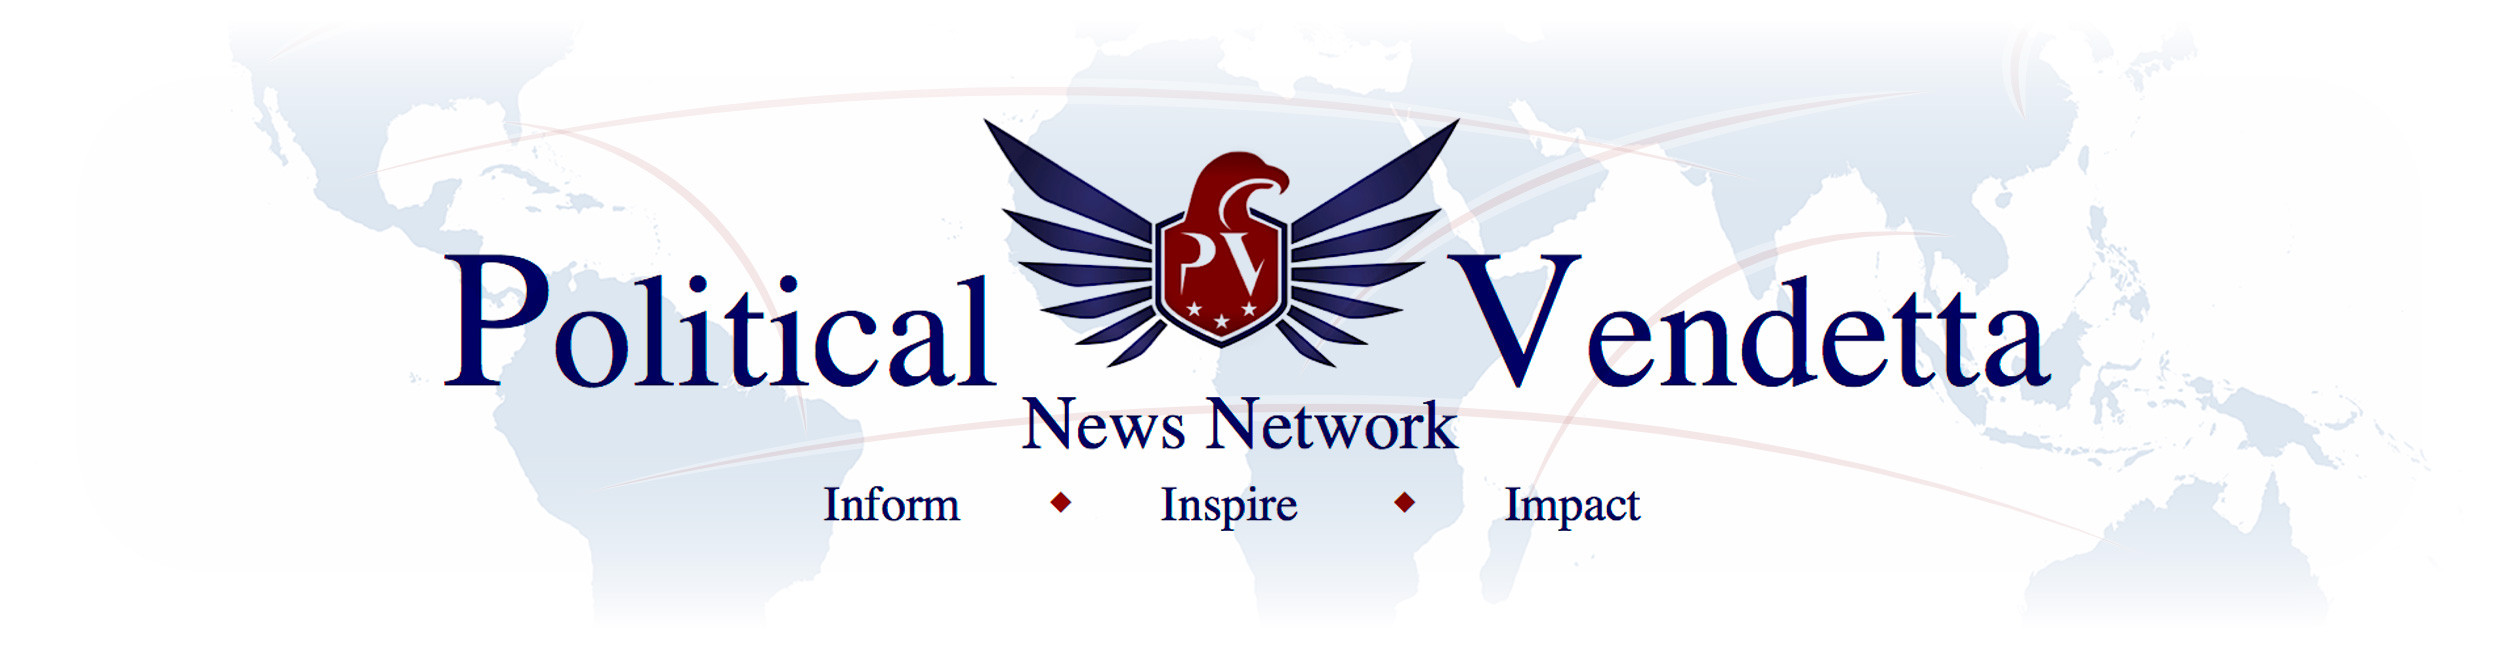 Political Vendetta News Network Logo